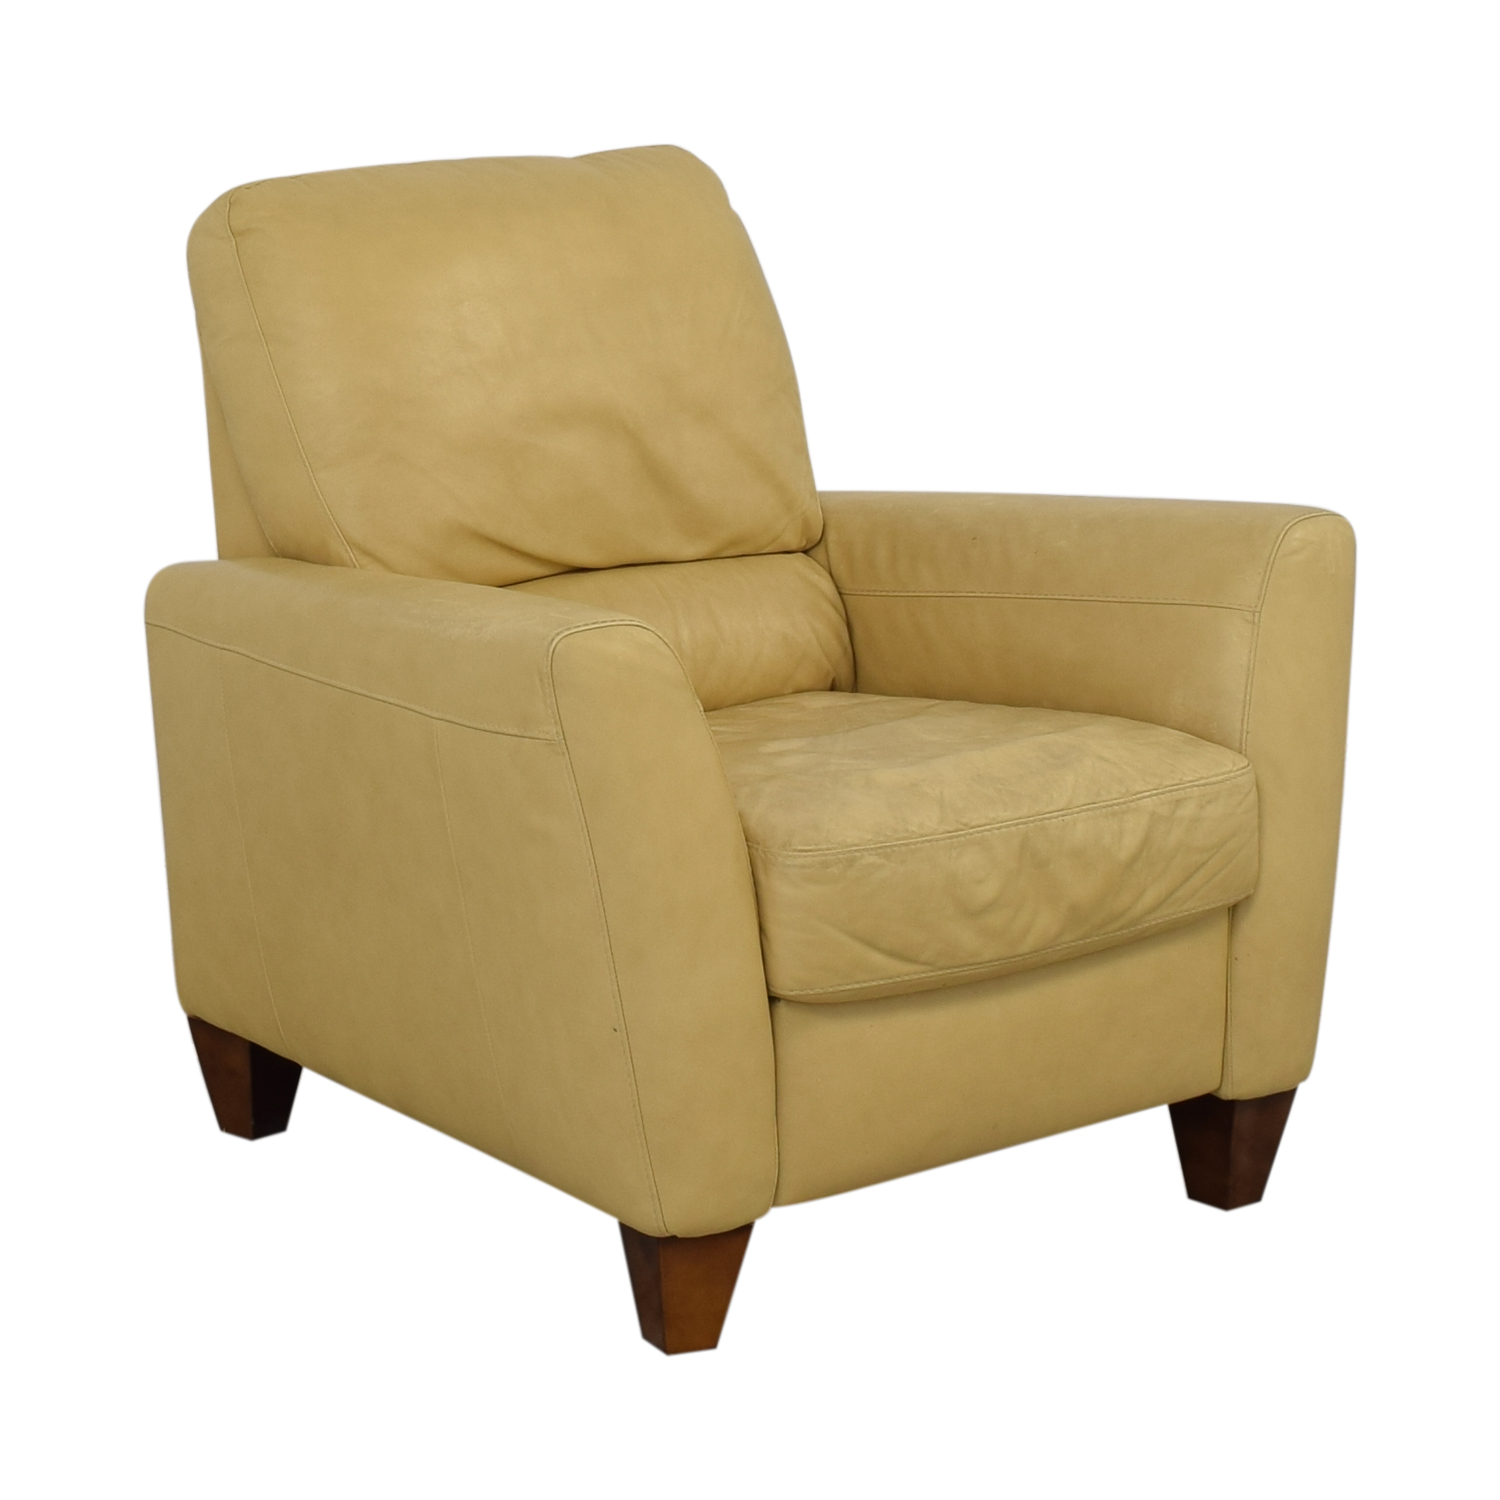 buy Macy's Mustard Yellow Recliner Macy's Chairs